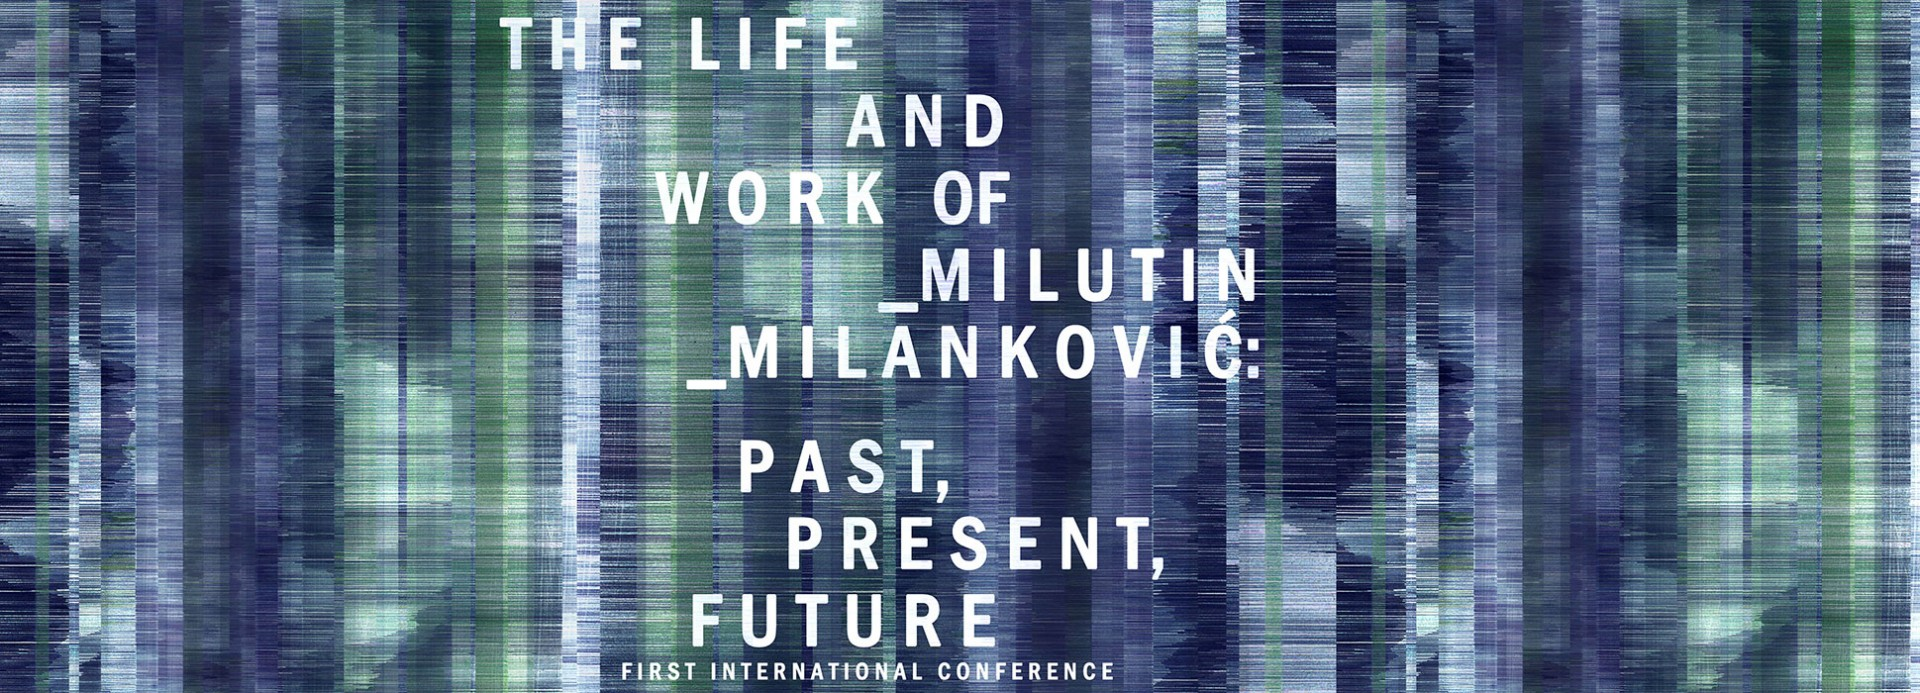 "International Conference: ""The Life and Work of Milutin Milanković: Past, Present, Future"" (19-21.07.2019)"